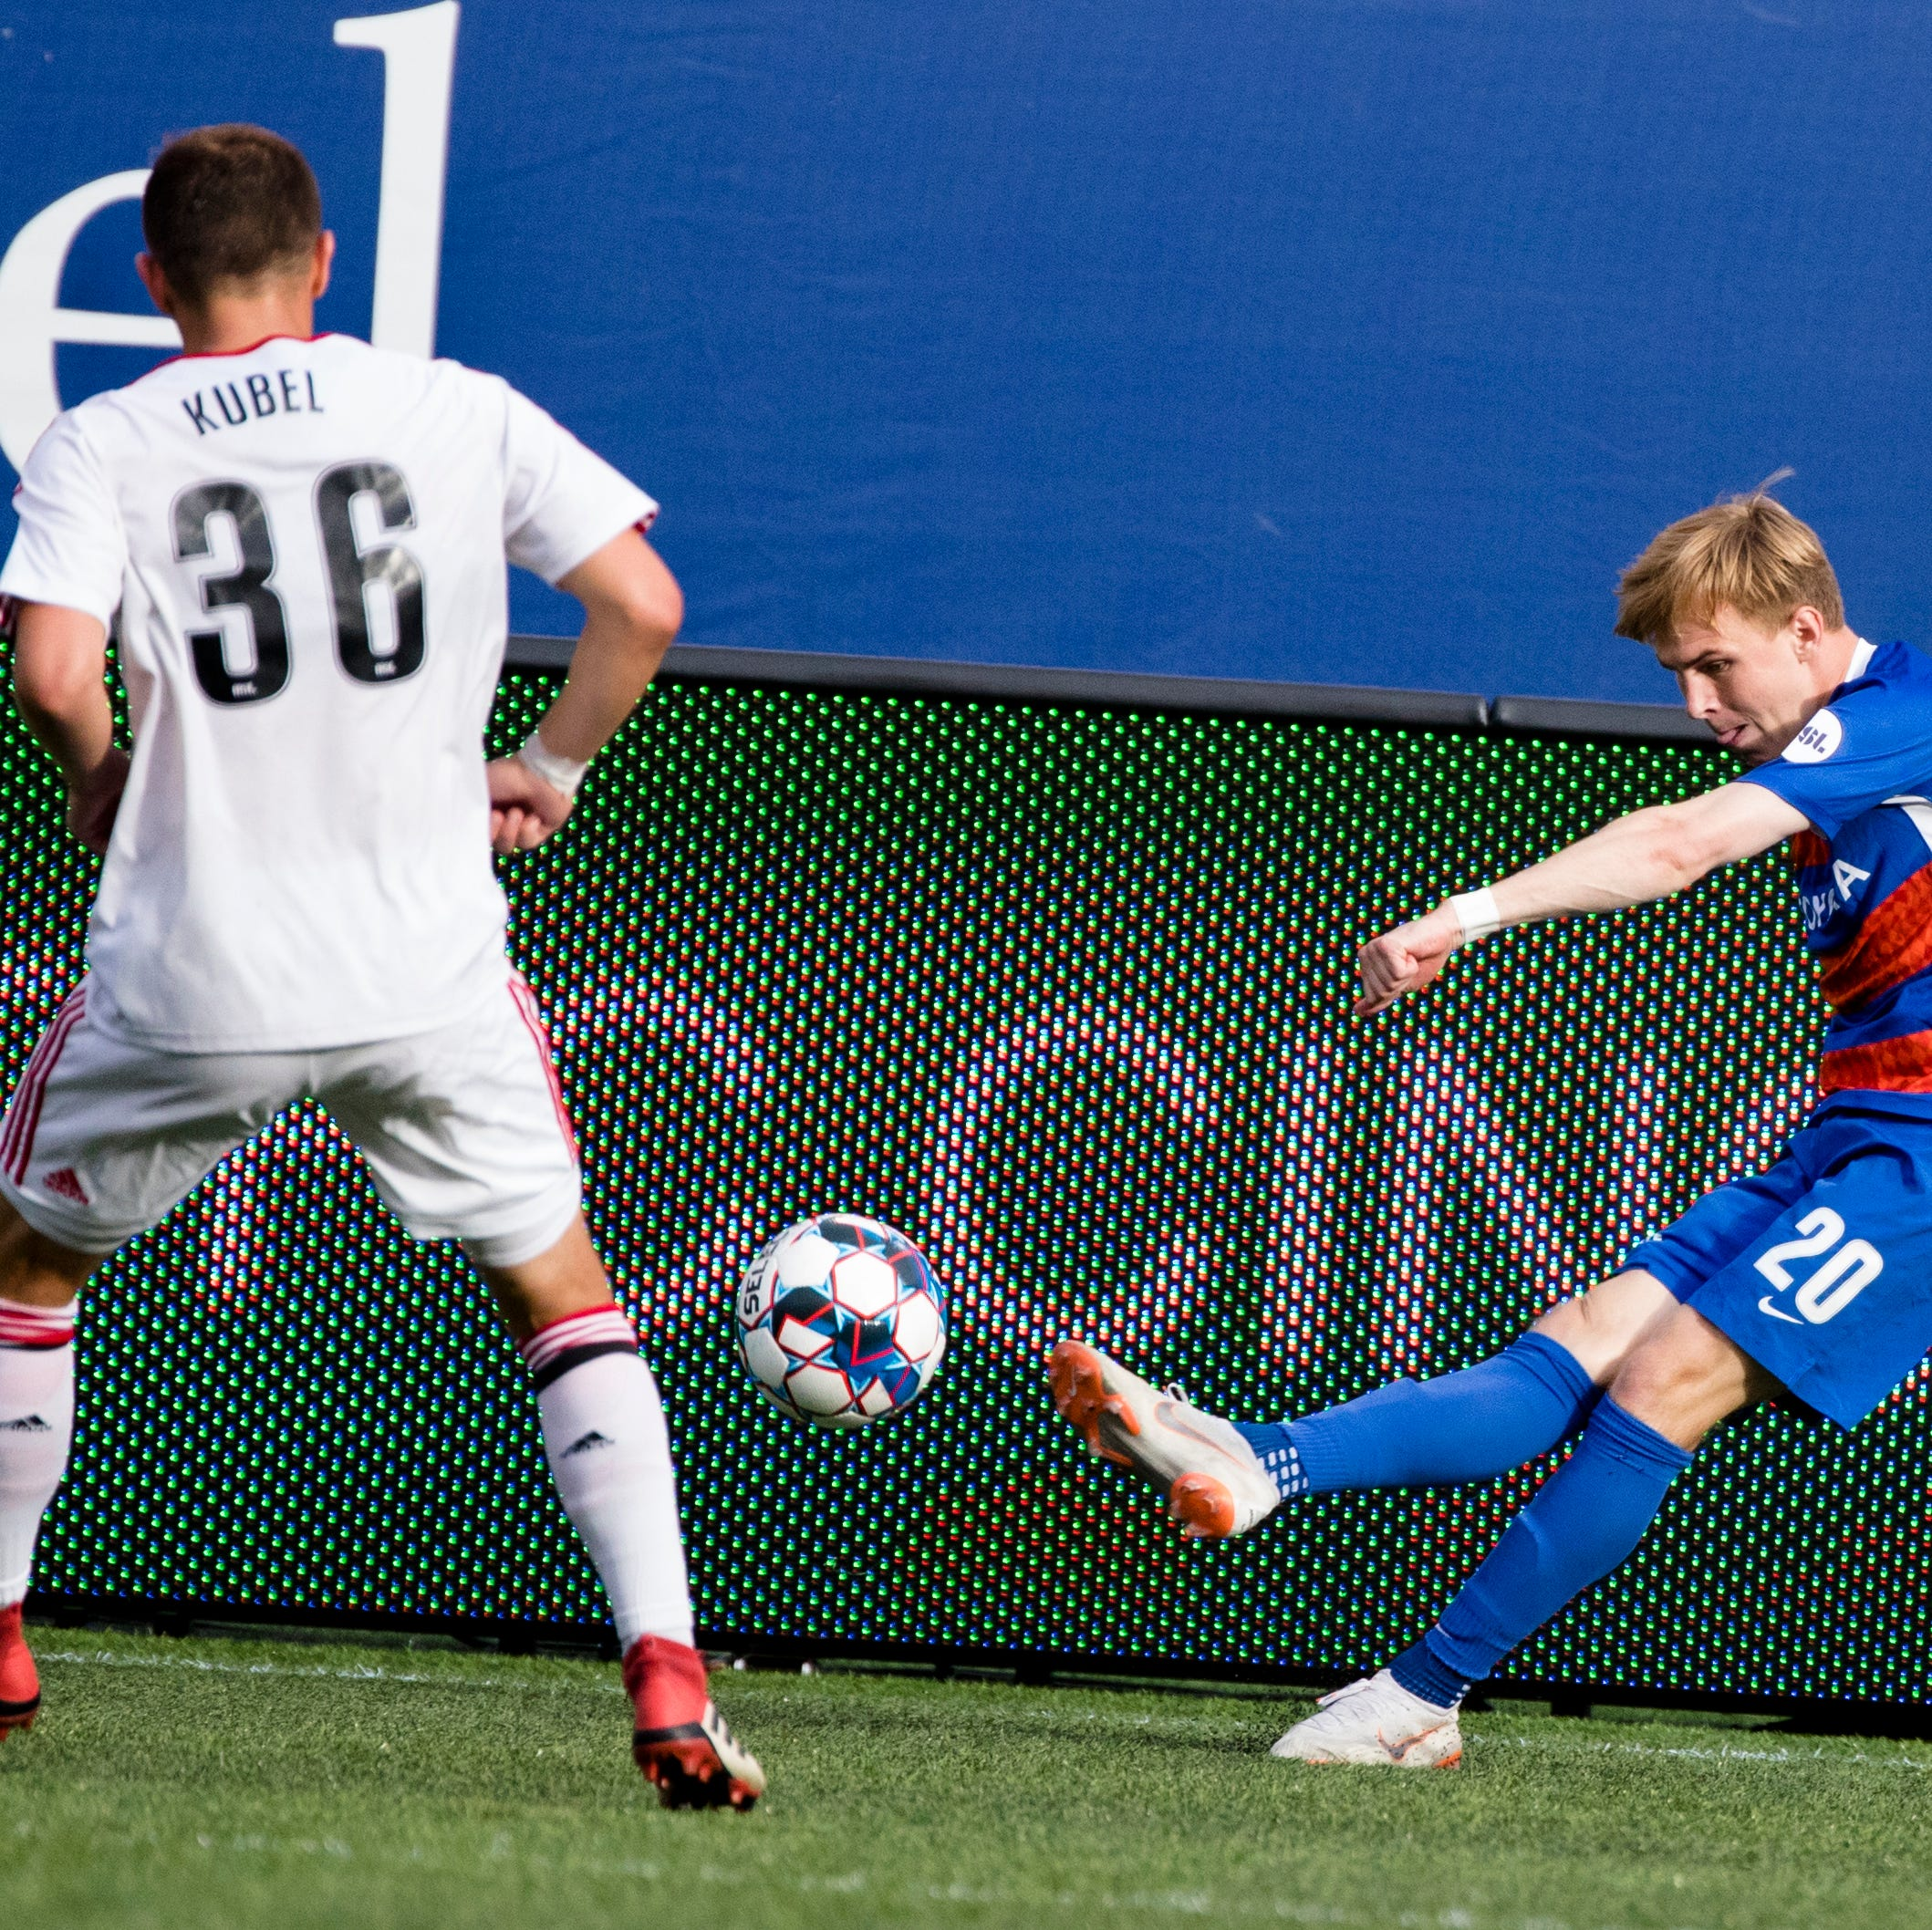 Kings of the east: FC Cincinnati takes USL Eastern Conference bragging rights with 2-1 win at Penn FC